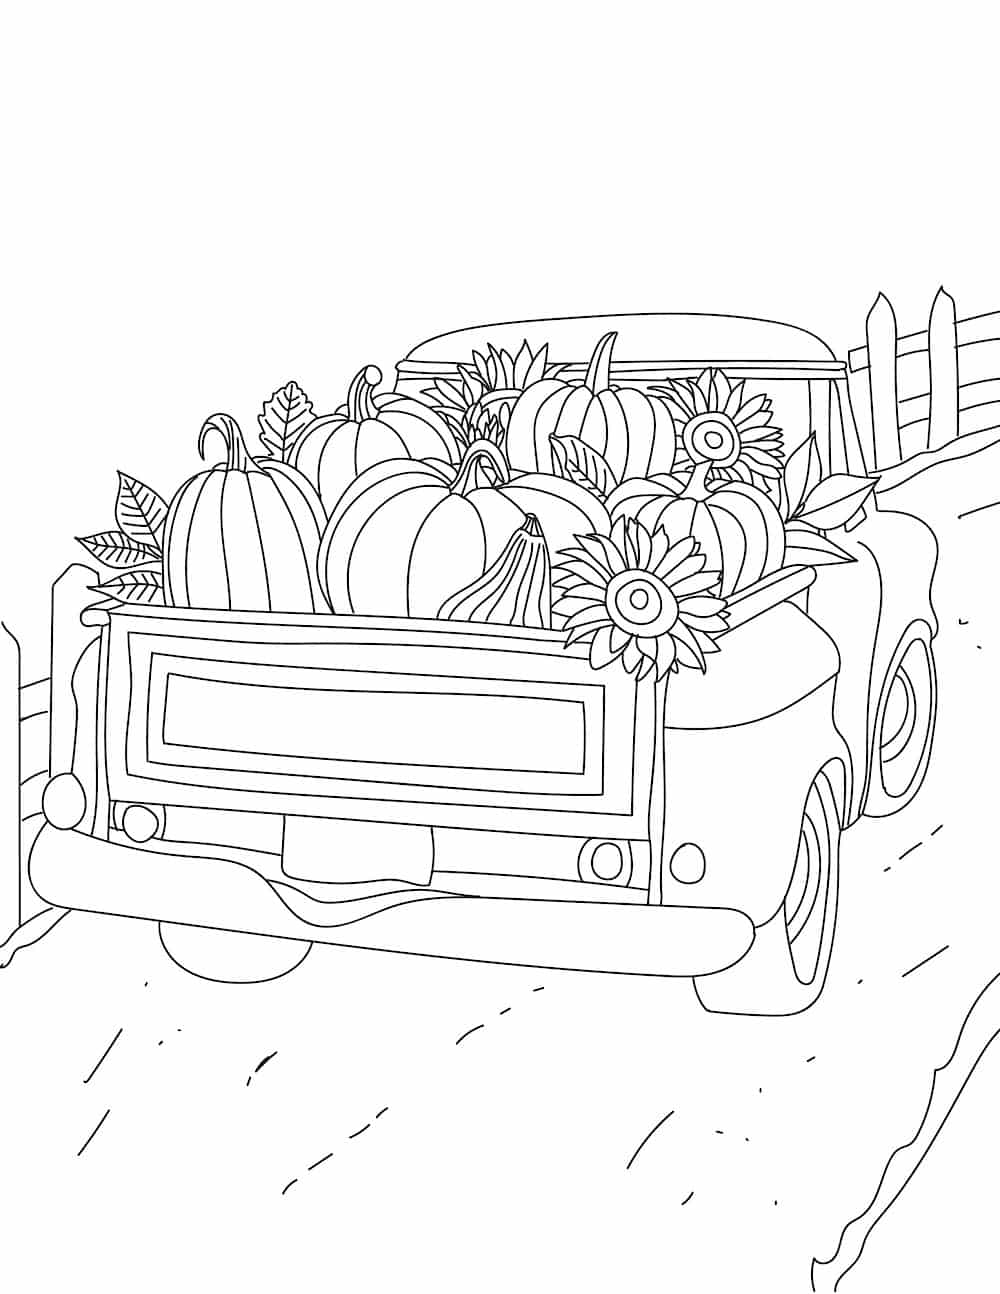 Need easy fall coloring pages for adults? This fall coloring page of an old truck loaded with pumpkins, gourds and sunflowers is the perfect fall activity for adults and kids.